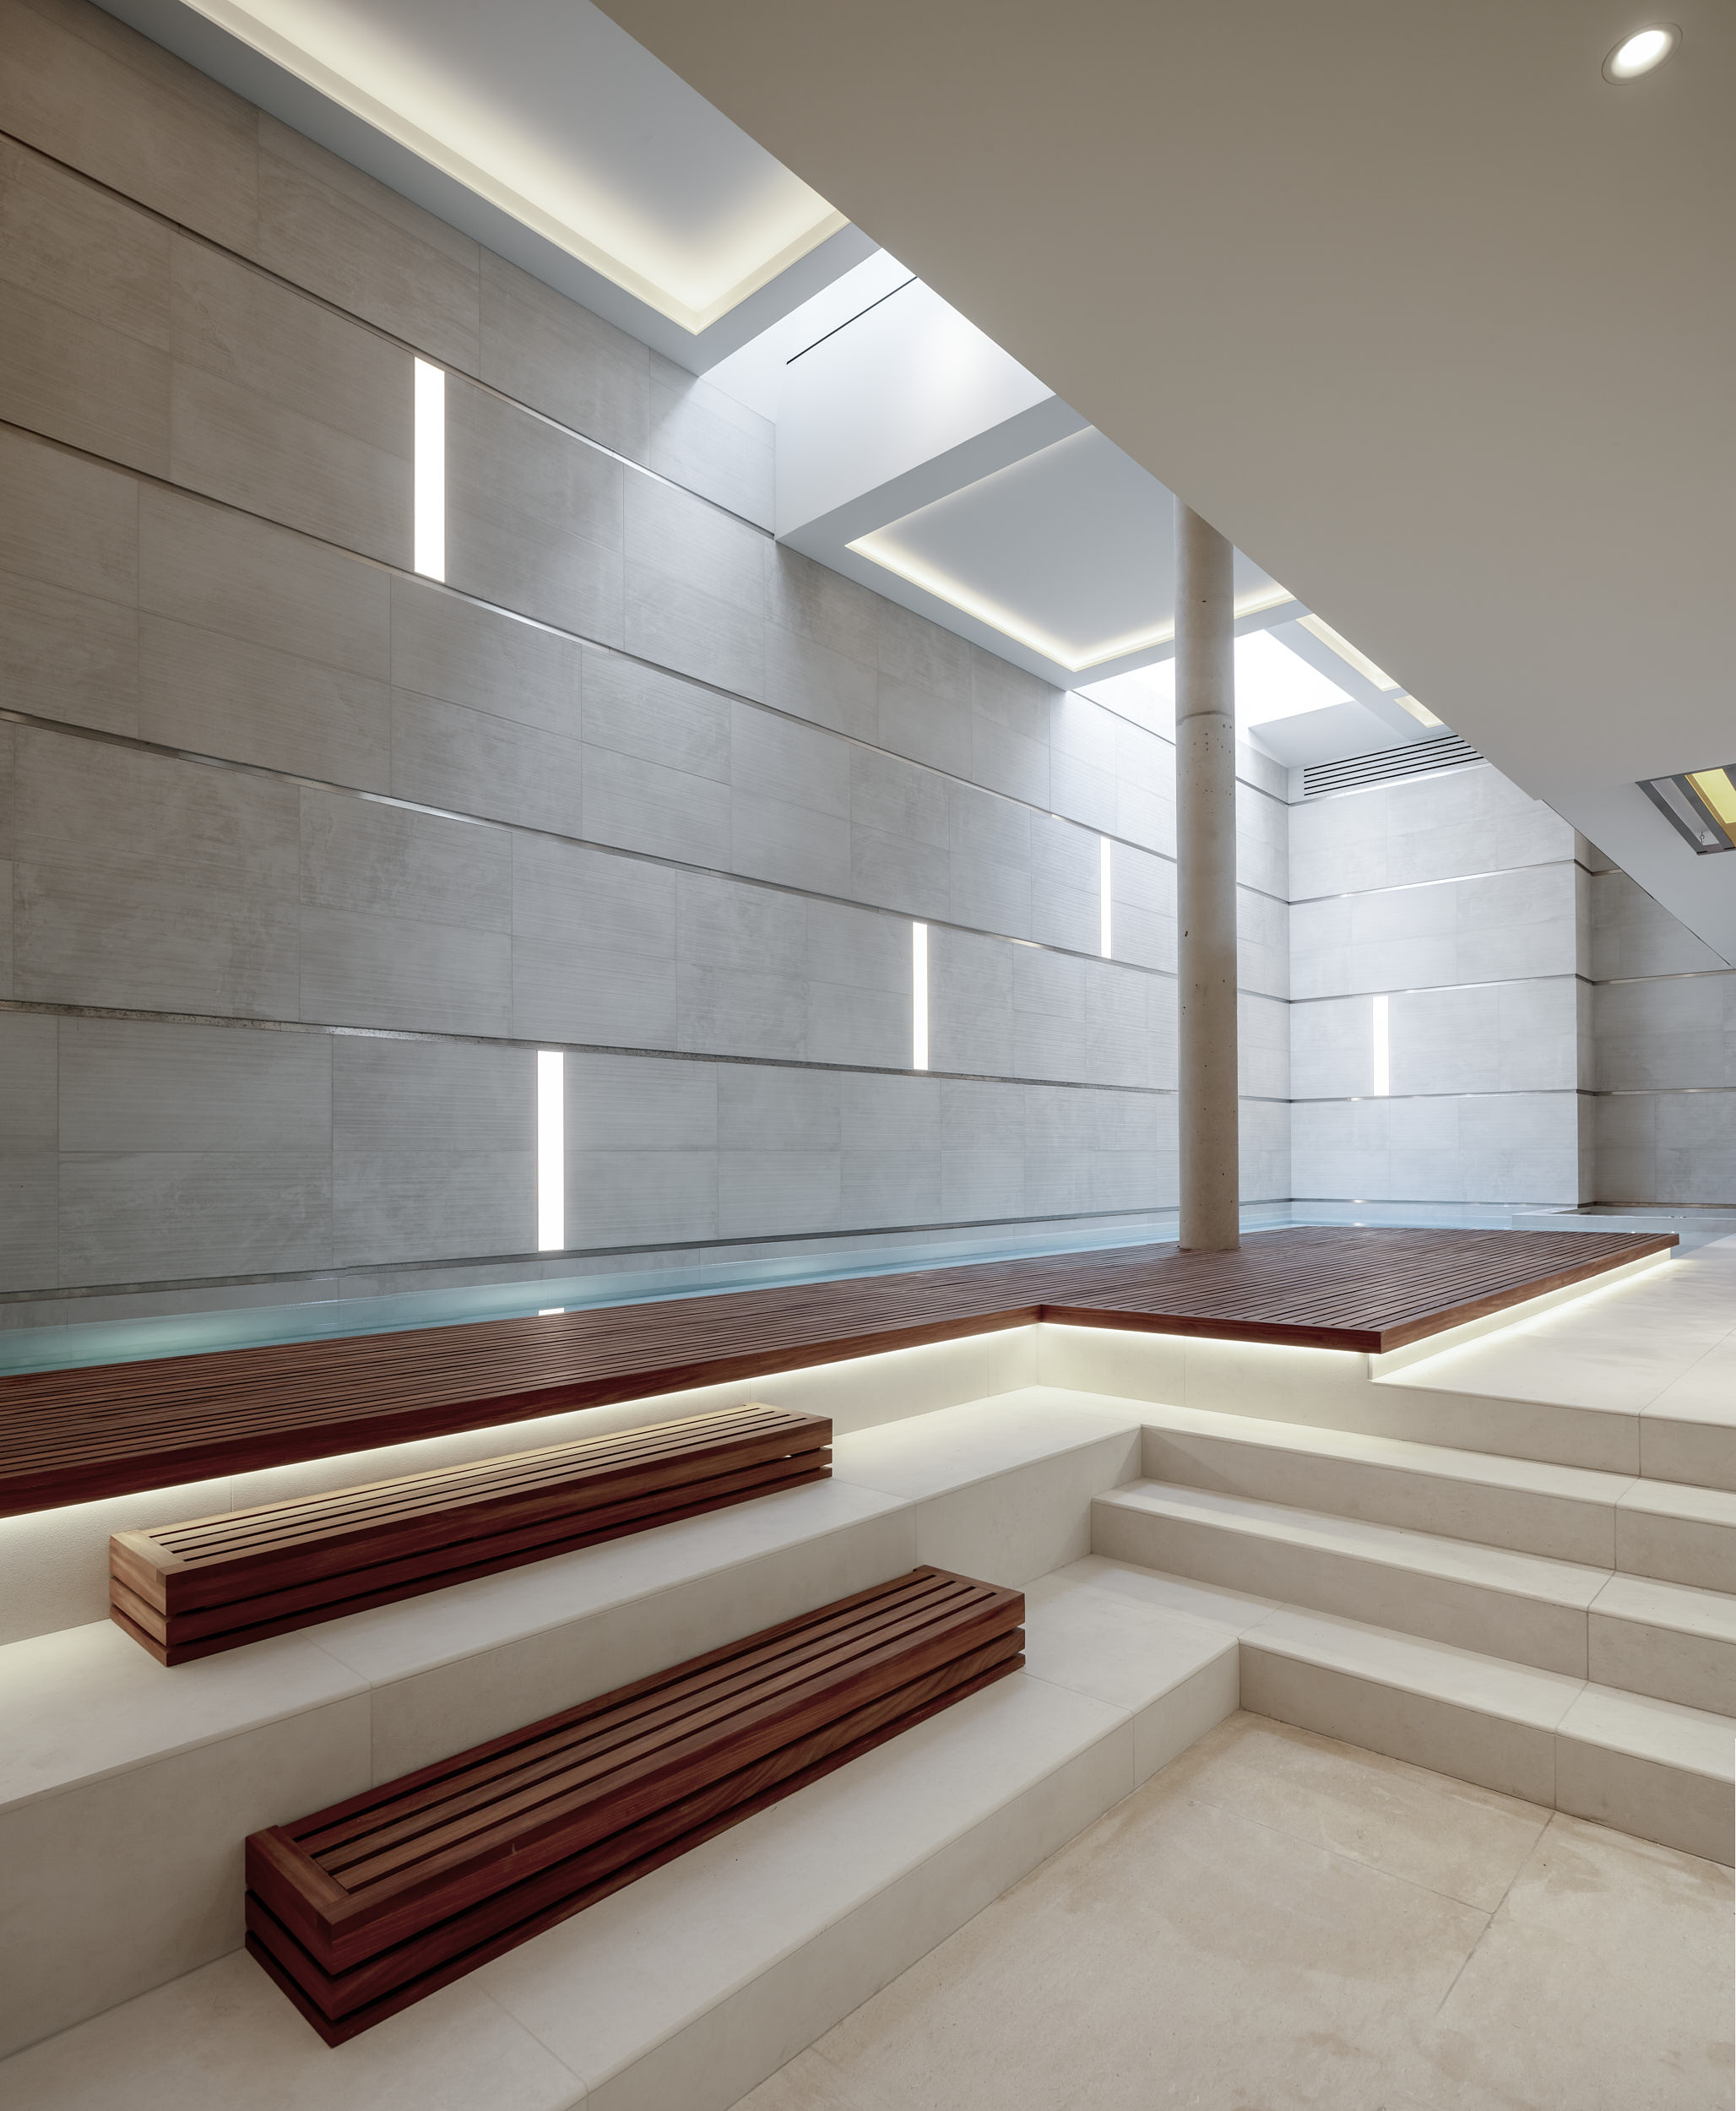 The subterranean pool features beautiful materials and sophisticated variable lighting modes.